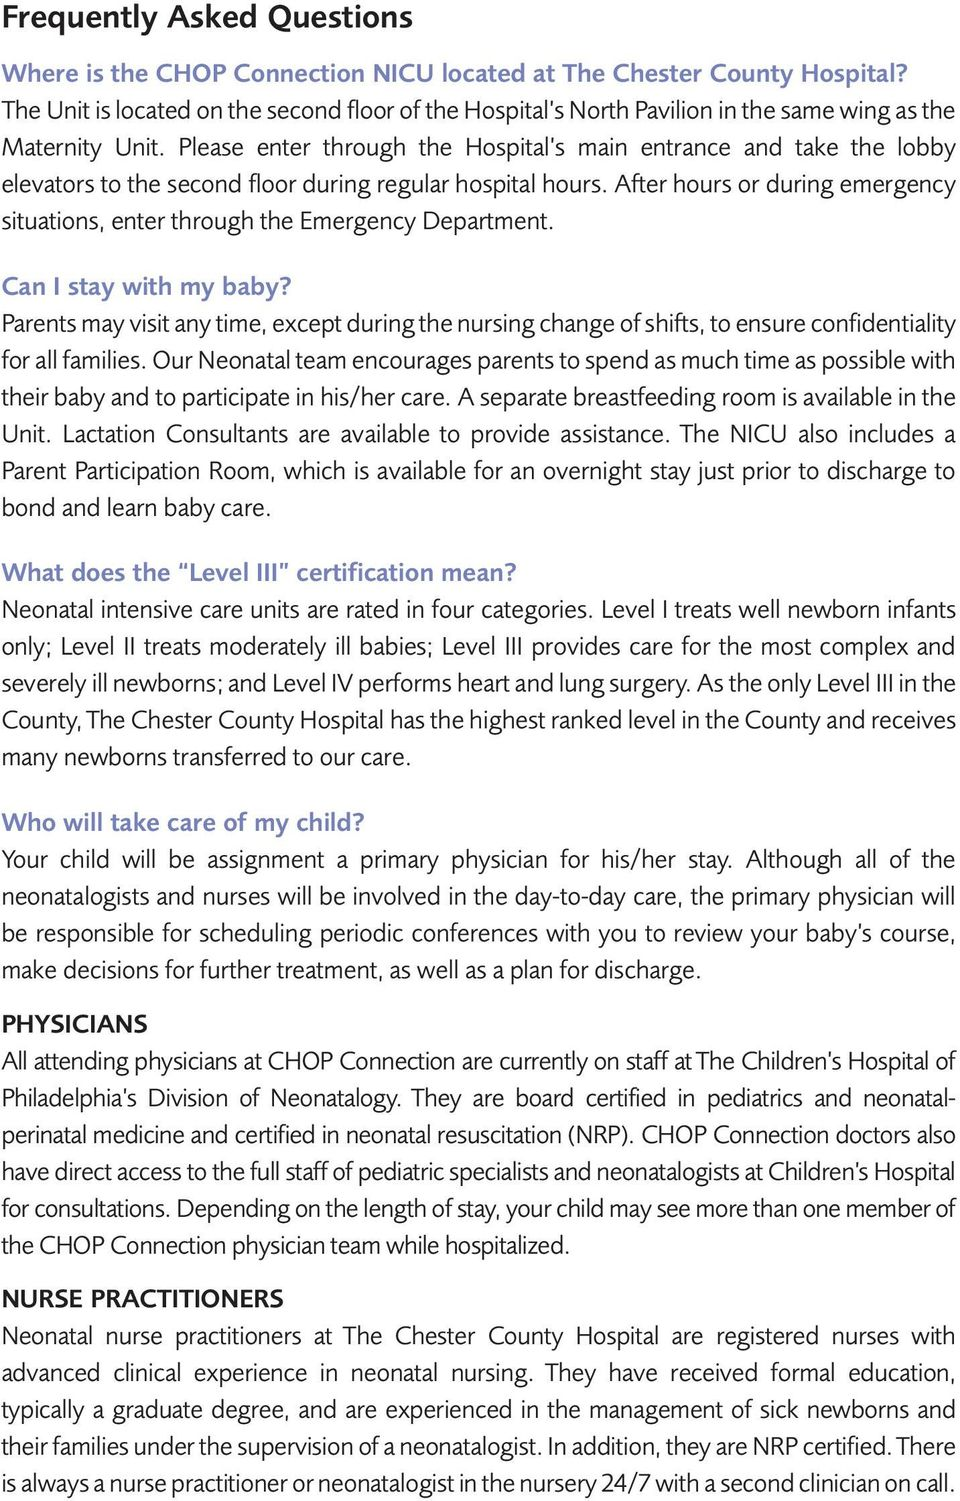 CHOP  The Chester County Hospital A GUIDE TO NEONATAL